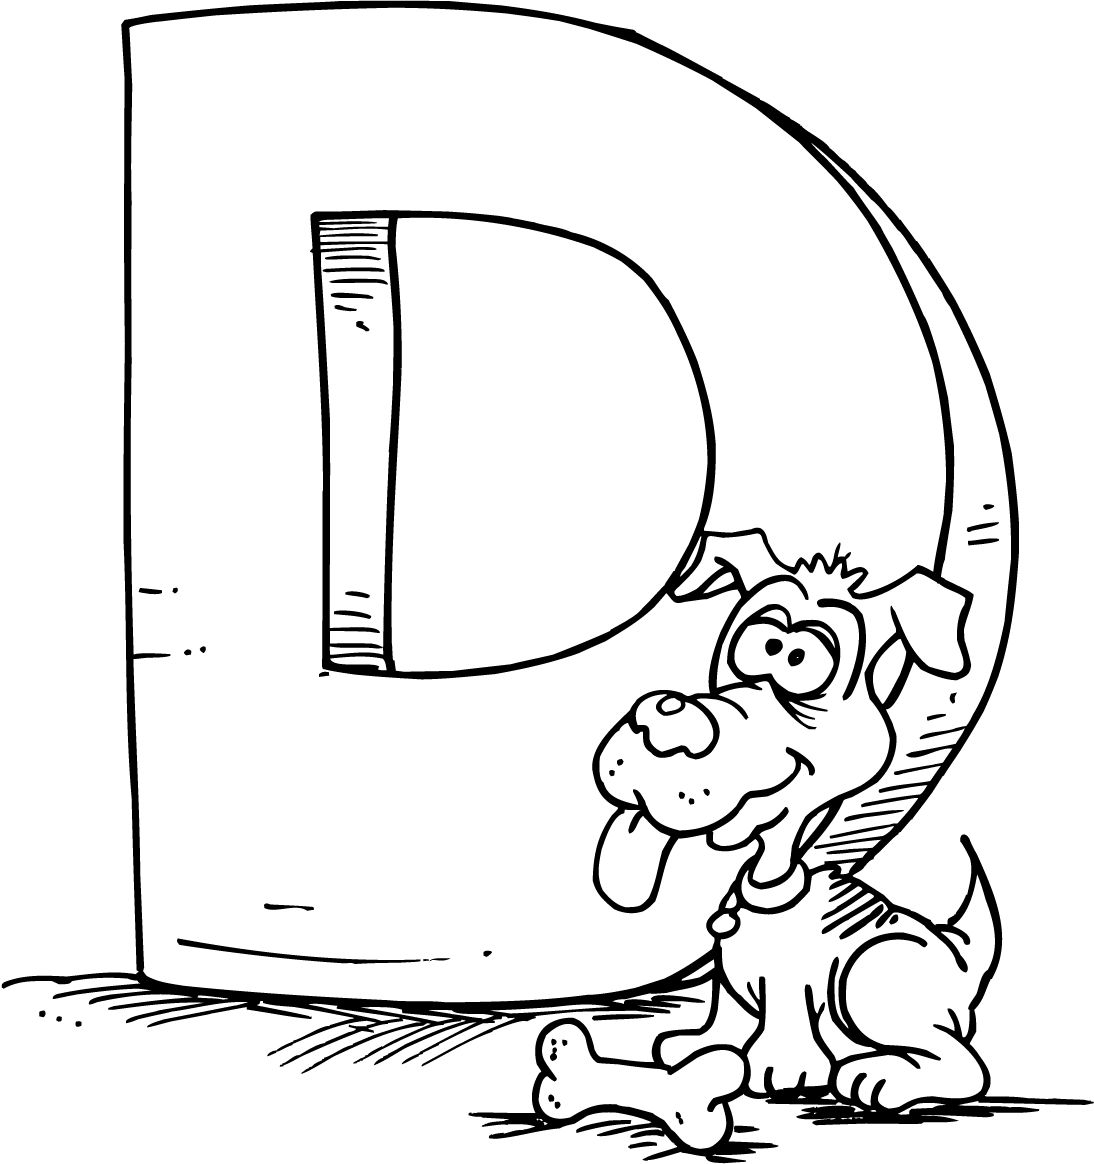 Coloring pages printable letter m - Letter D Coloring Pages Free Online Printable Coloring Pages Sheets For Kids Get The Latest Free Letter D Coloring Pages Images Favorite Coloring Pages